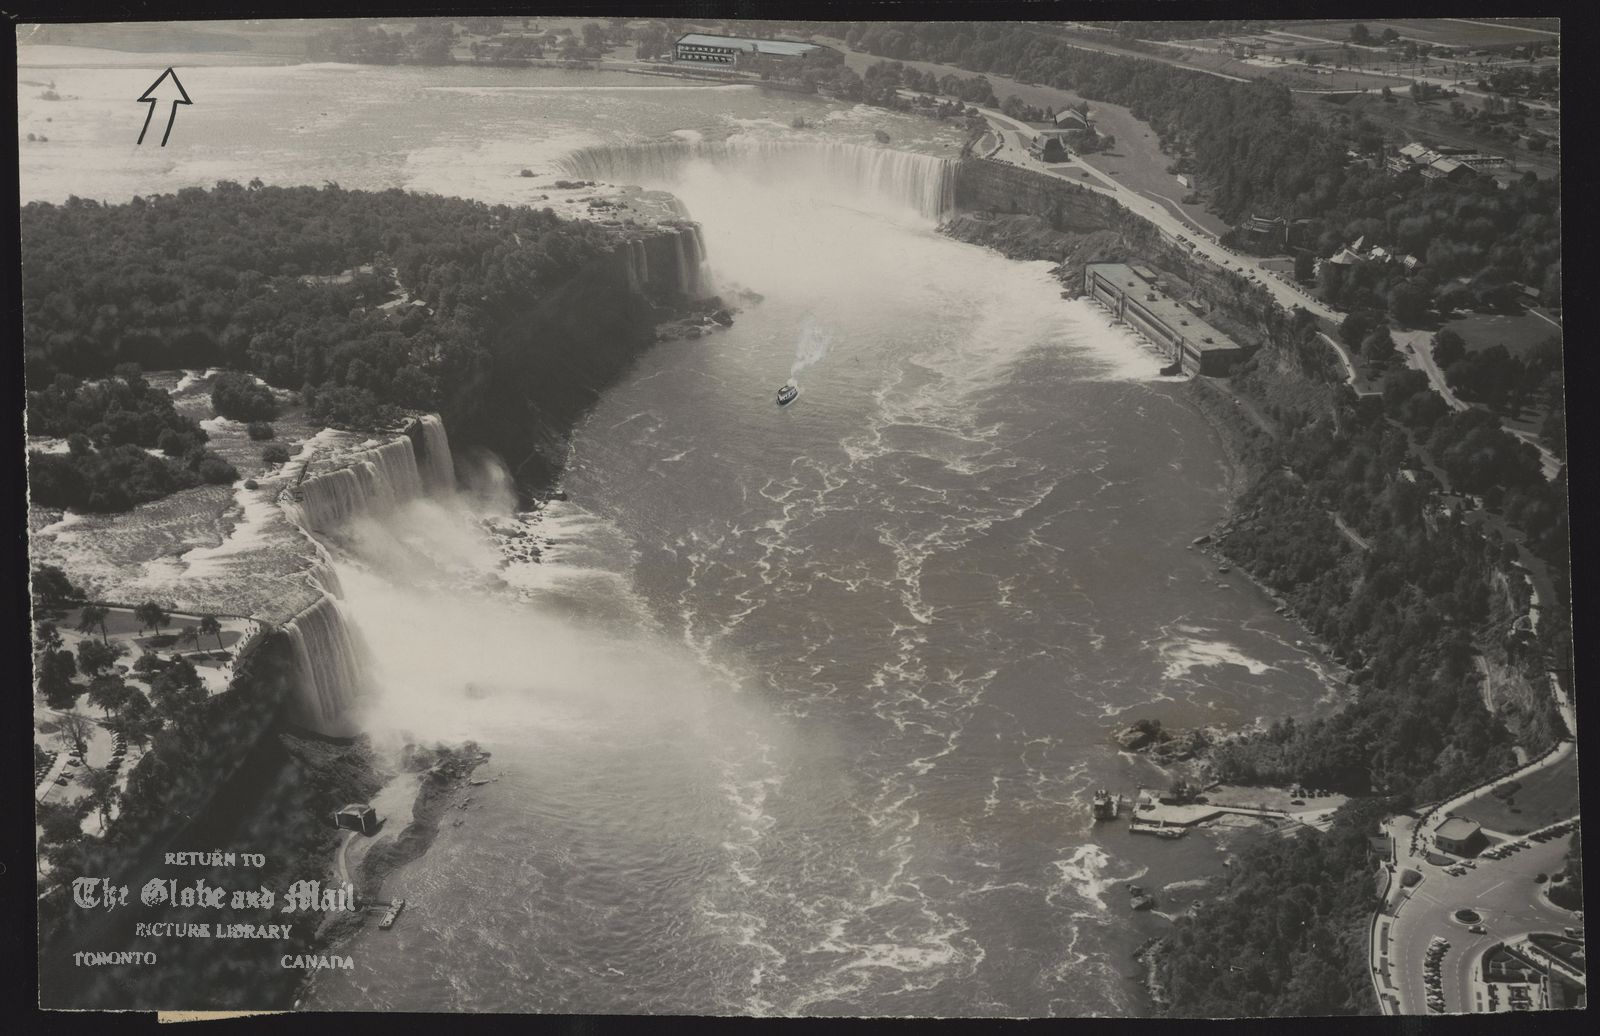 Niagara's world-famed scenic attractions are nearly all displayed in this one comprehensive, low-level air photograph taken from a point directly over the Rainbow Bridge. Part of bridge is at lower left. Clockwise around the picture are: Falls View Park, Niagara Falls, N.Y.; the American Falls (167 feet); Goat Island, with the sightseeing steamship Maid of the Mist in river below; the Canadian Falls (163 feet) and beyond it Hydro intake plant; Table Rock House; the former Ontario Power Co. plant (below cliff); Queen Victoria Park restaurant; Maid of the Mist dock and Clifton incline Oakes Garden Theatre and Memorial Arch on Niagara Blvd. Arrow indicates intake to twin tunnels which will carry 15,000,000 gallons of water a minute under Niagara Falls, Ont., to the giant, new Sir Adam Beck-Niagara Generating Station No. 2 at Queenston. Joint Canada-U.S. construction on remedial works will begin next month to create a more uniform flow, particularly over the 2,600-foot crestline of the Horseshoe Falls which is eroding at the middle, and to contribute to the most effective use of water for power production.